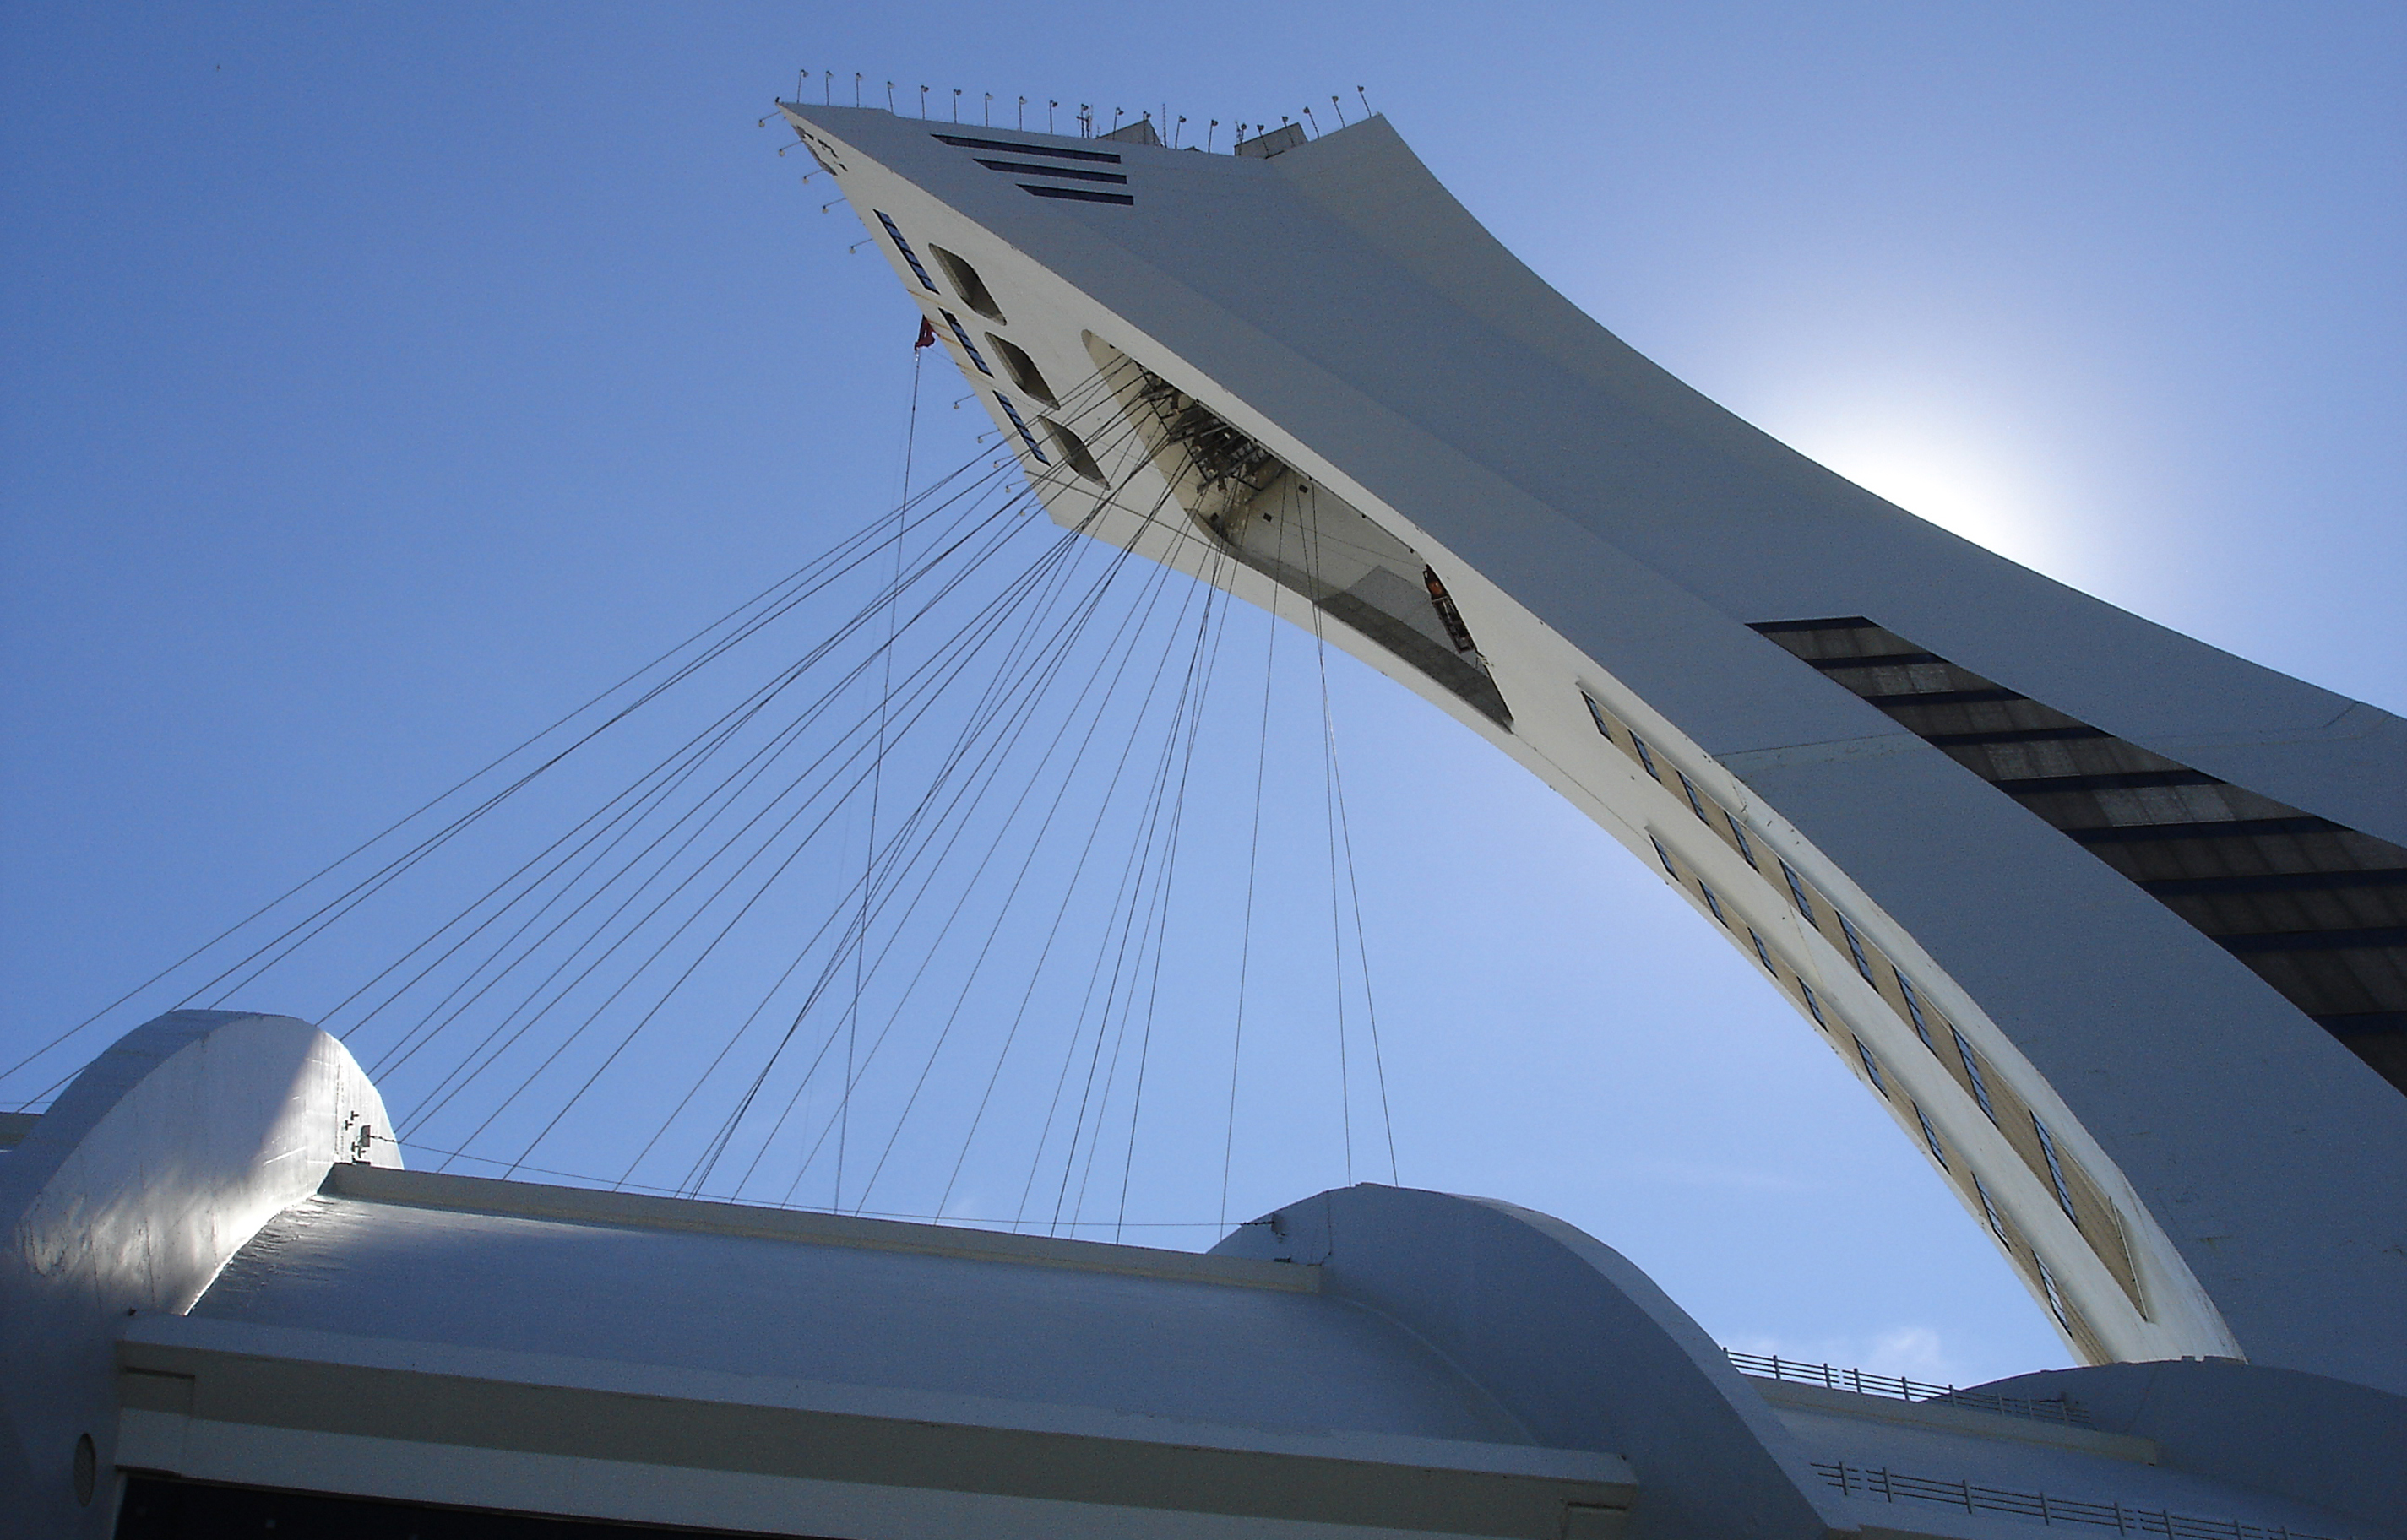 Pictured is a backlit view of the tower of the Montreal Olympic Stadium. Pomerleau BIM-VDC director Ivanka Iordanova says recent modifications to the Olympic Tower are an an example of a BIM project that couldn't have been completed otherwise.